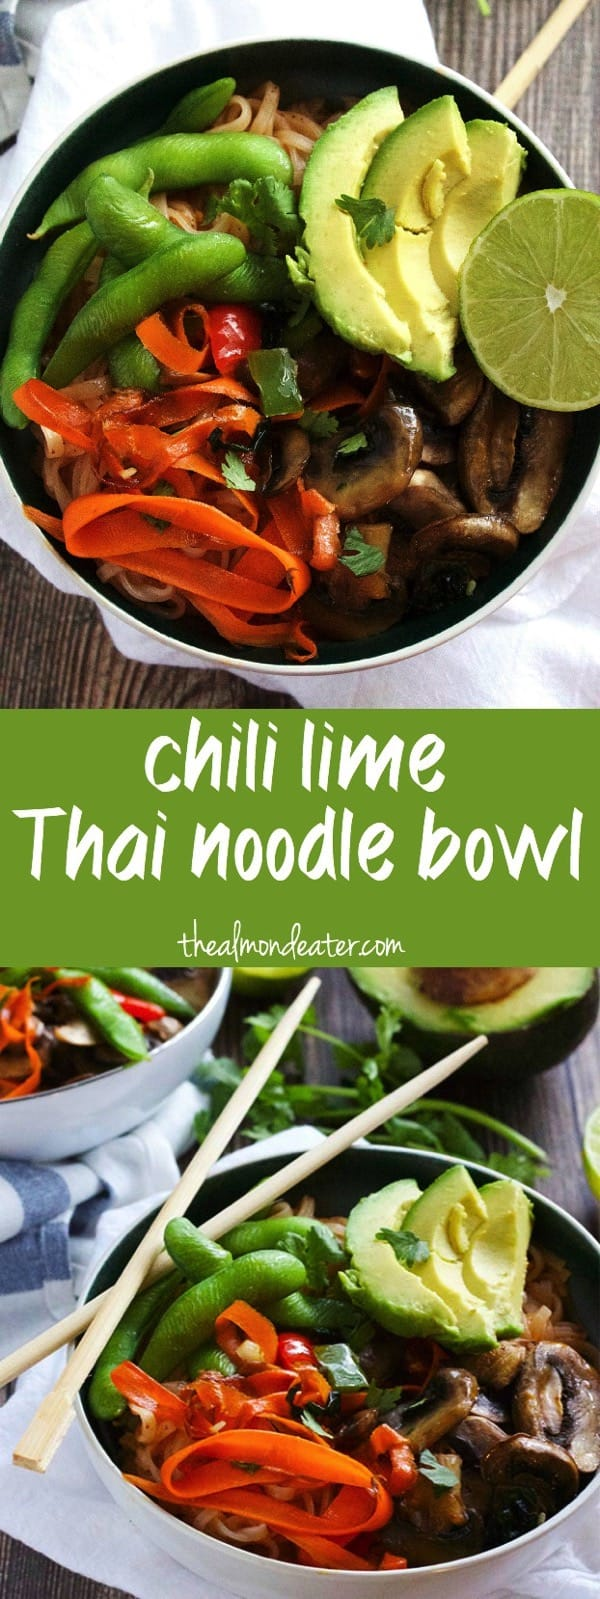 Chili Lime Thai Noodle Bowl | A delicious bowl that's gluten free, dairy free and only 8 ingredients!